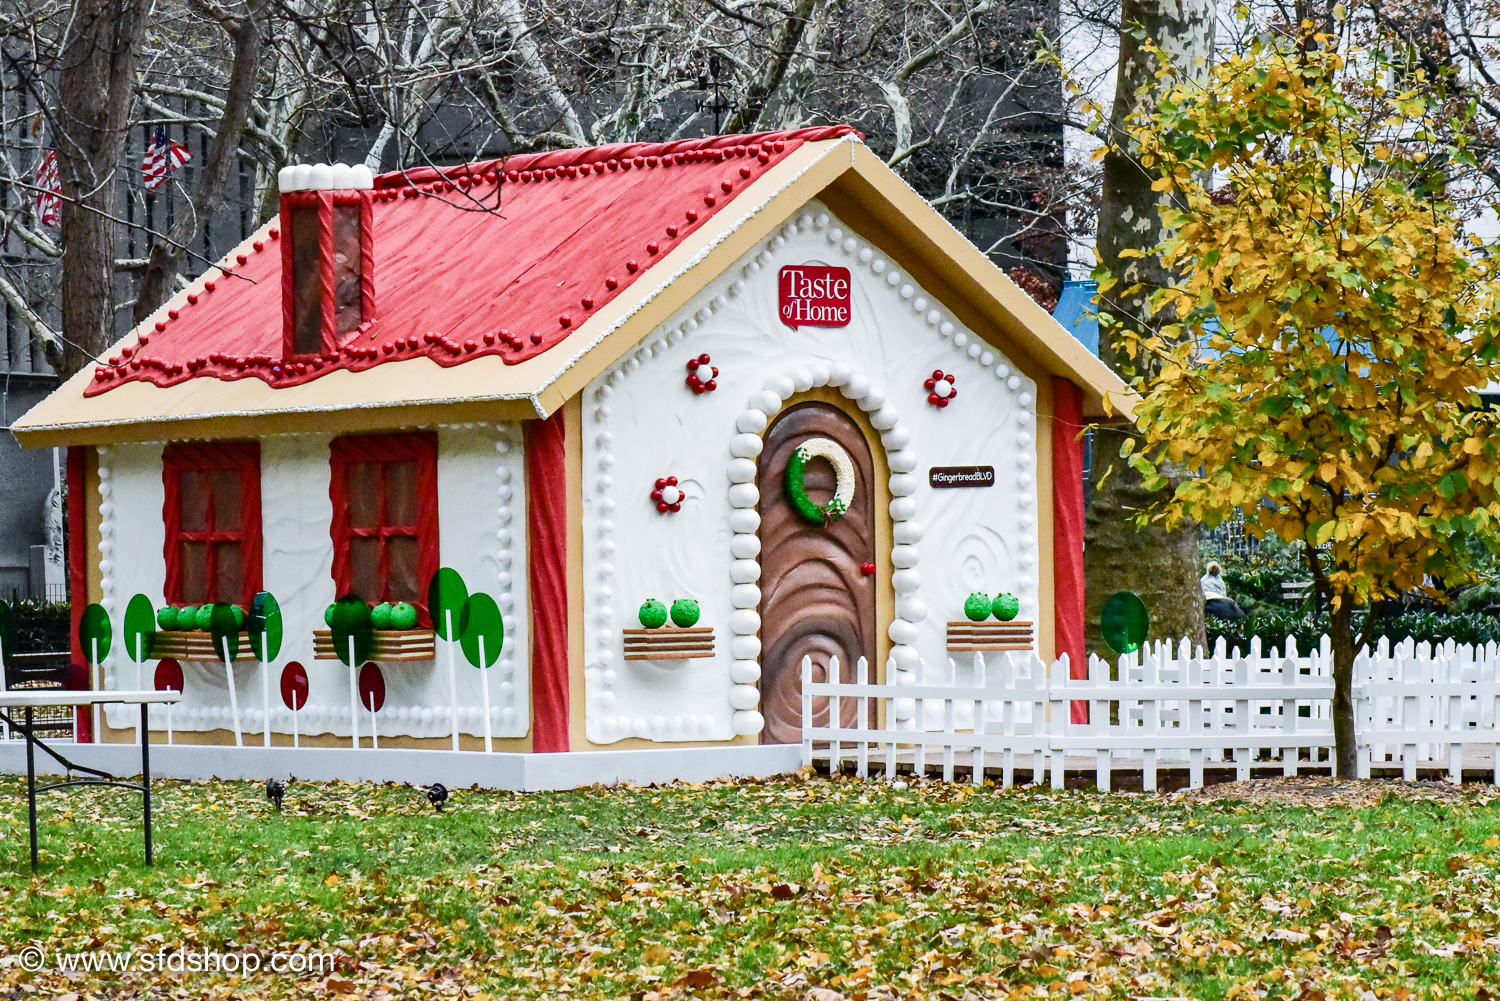 Taste of Home Gingerbread Blvd 2017 fabricated by SFDS-13.jpg